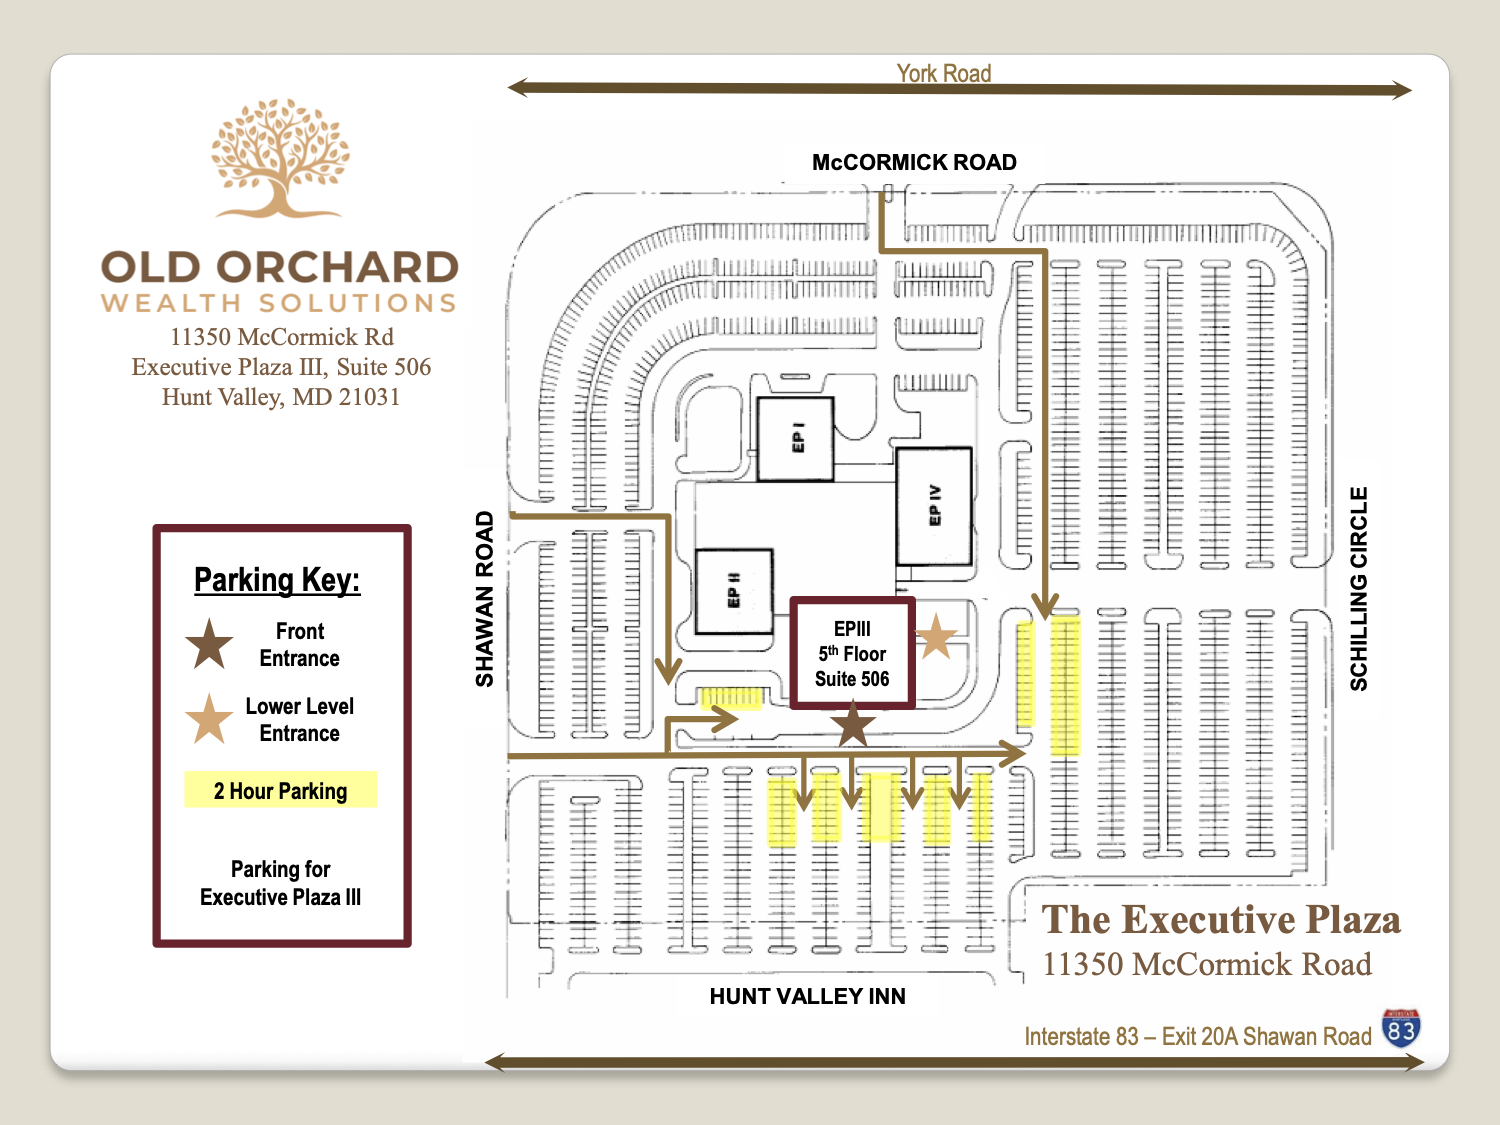 Parking map Baltimore, MD, Old Orchard Wealth Solutions